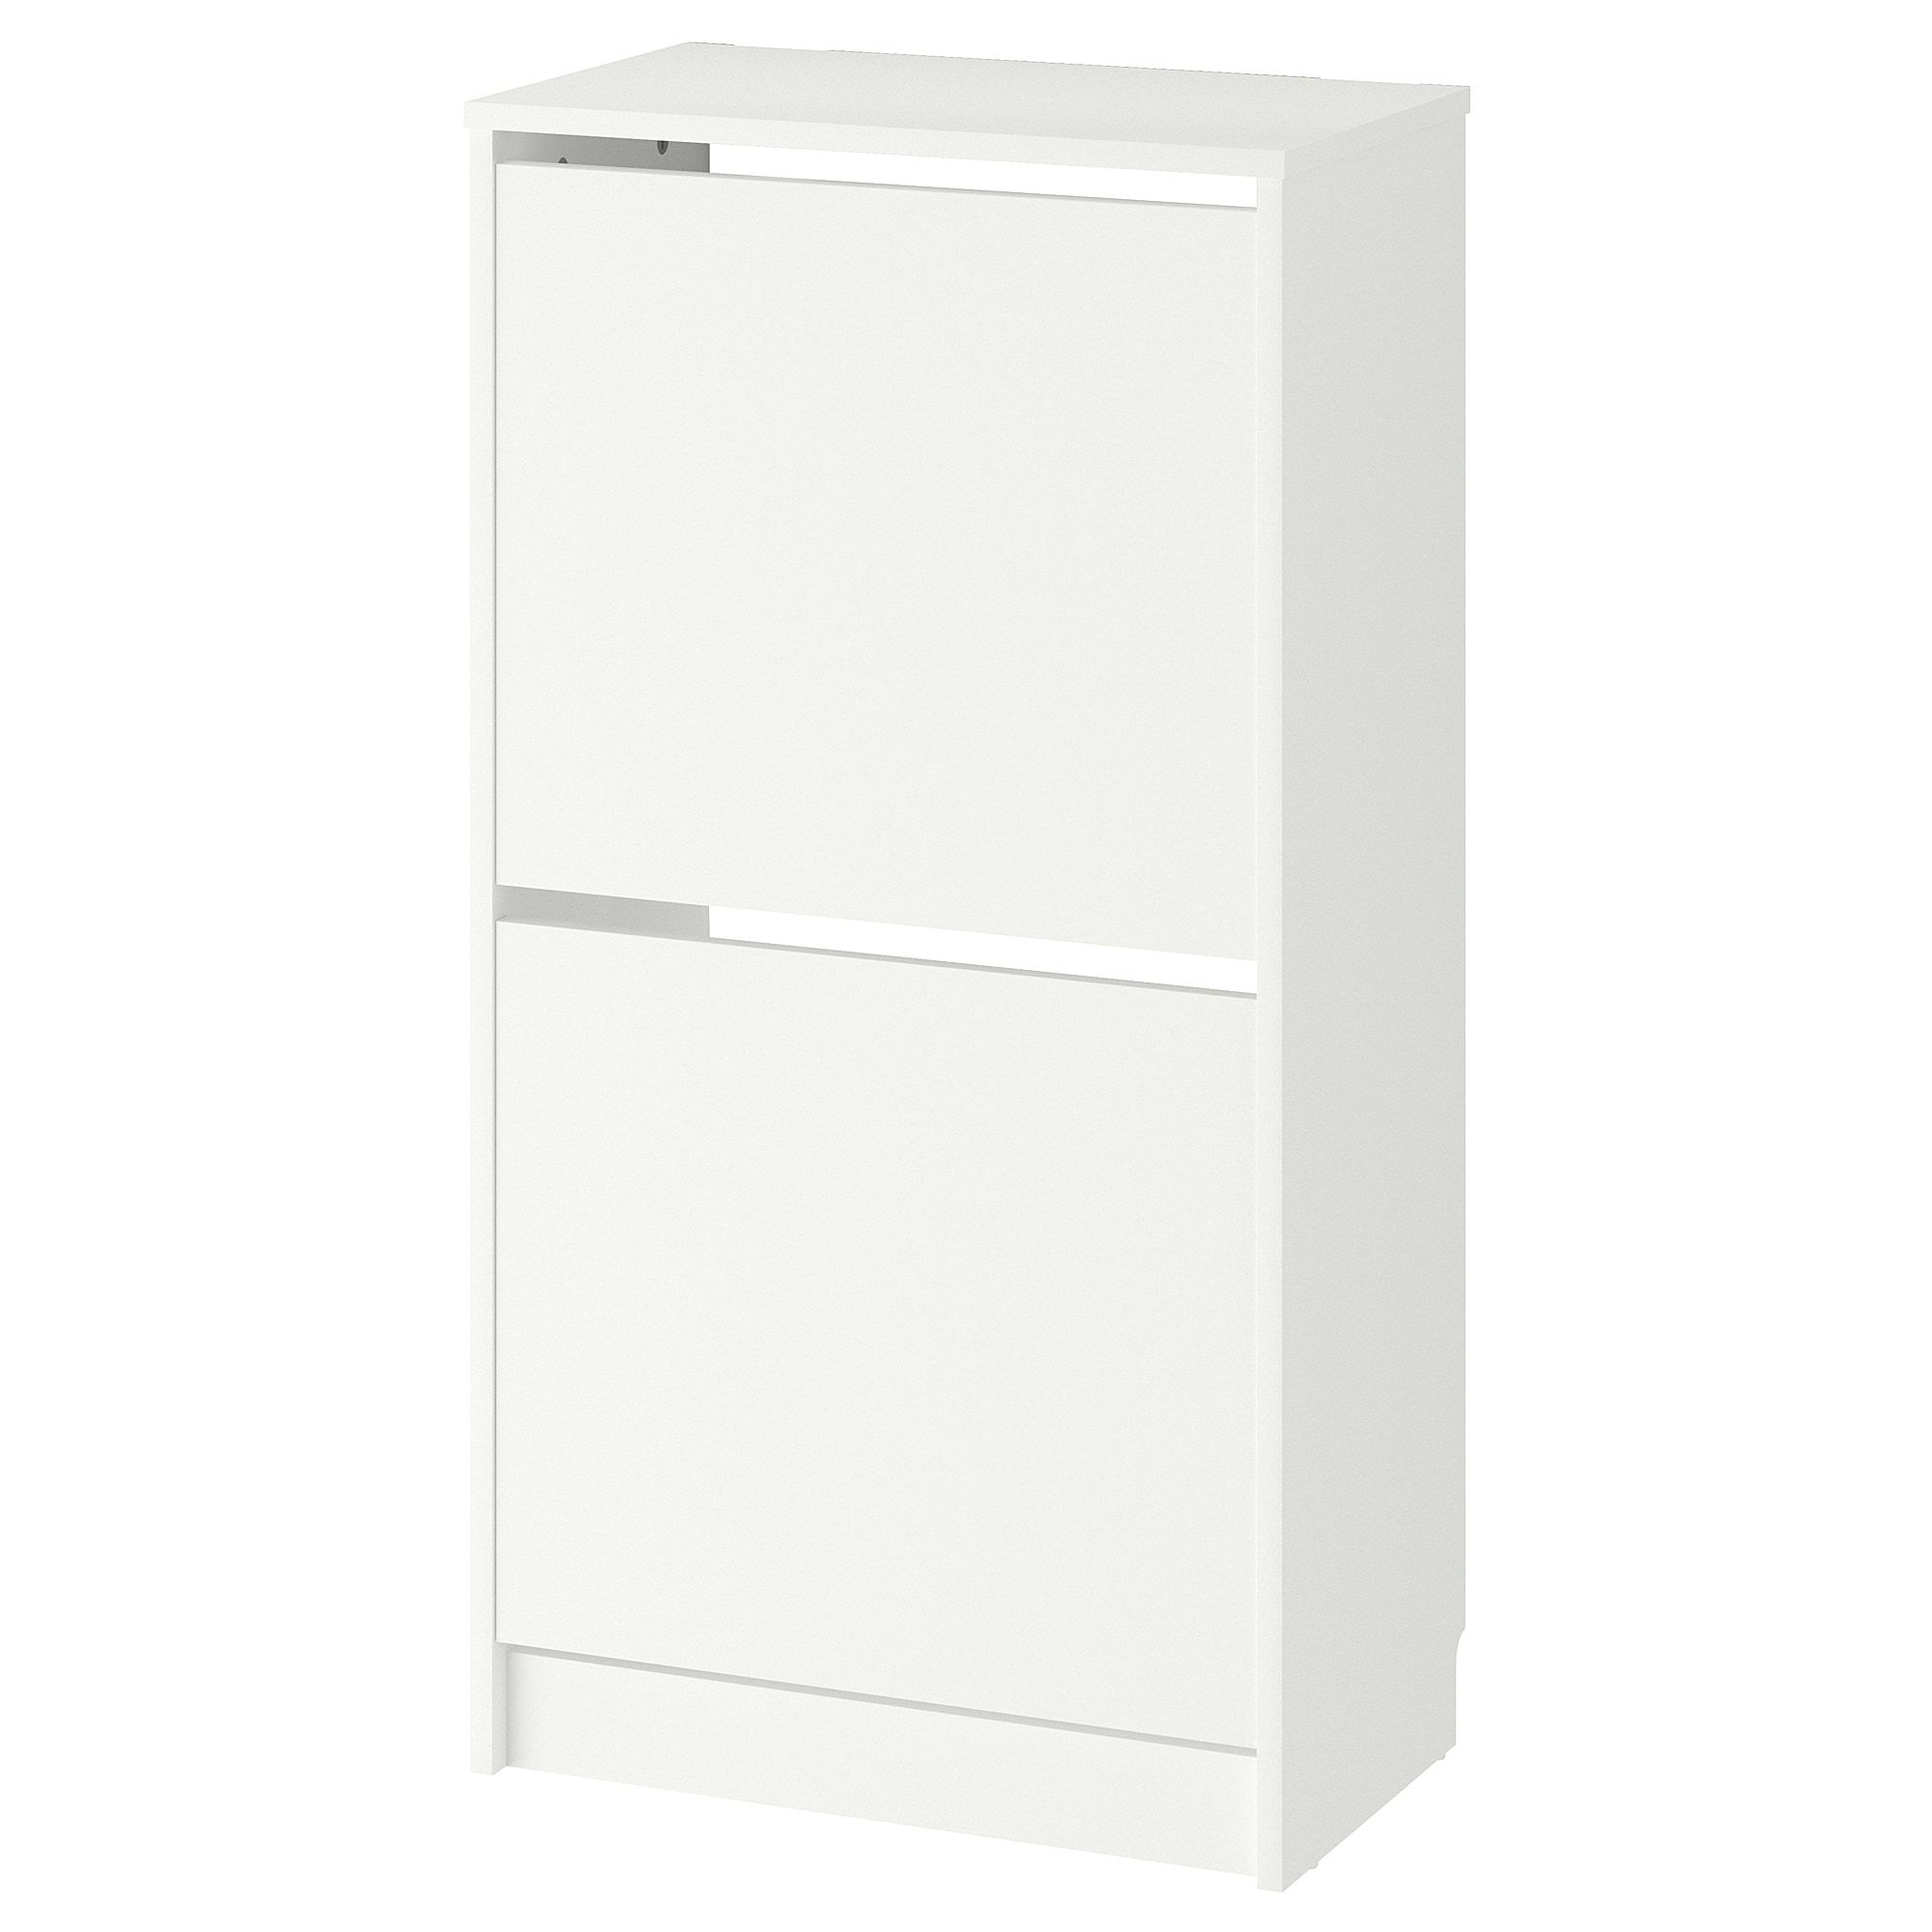 Ikea Bissa White Shoe Cabinet With 2 Compartments In 2019